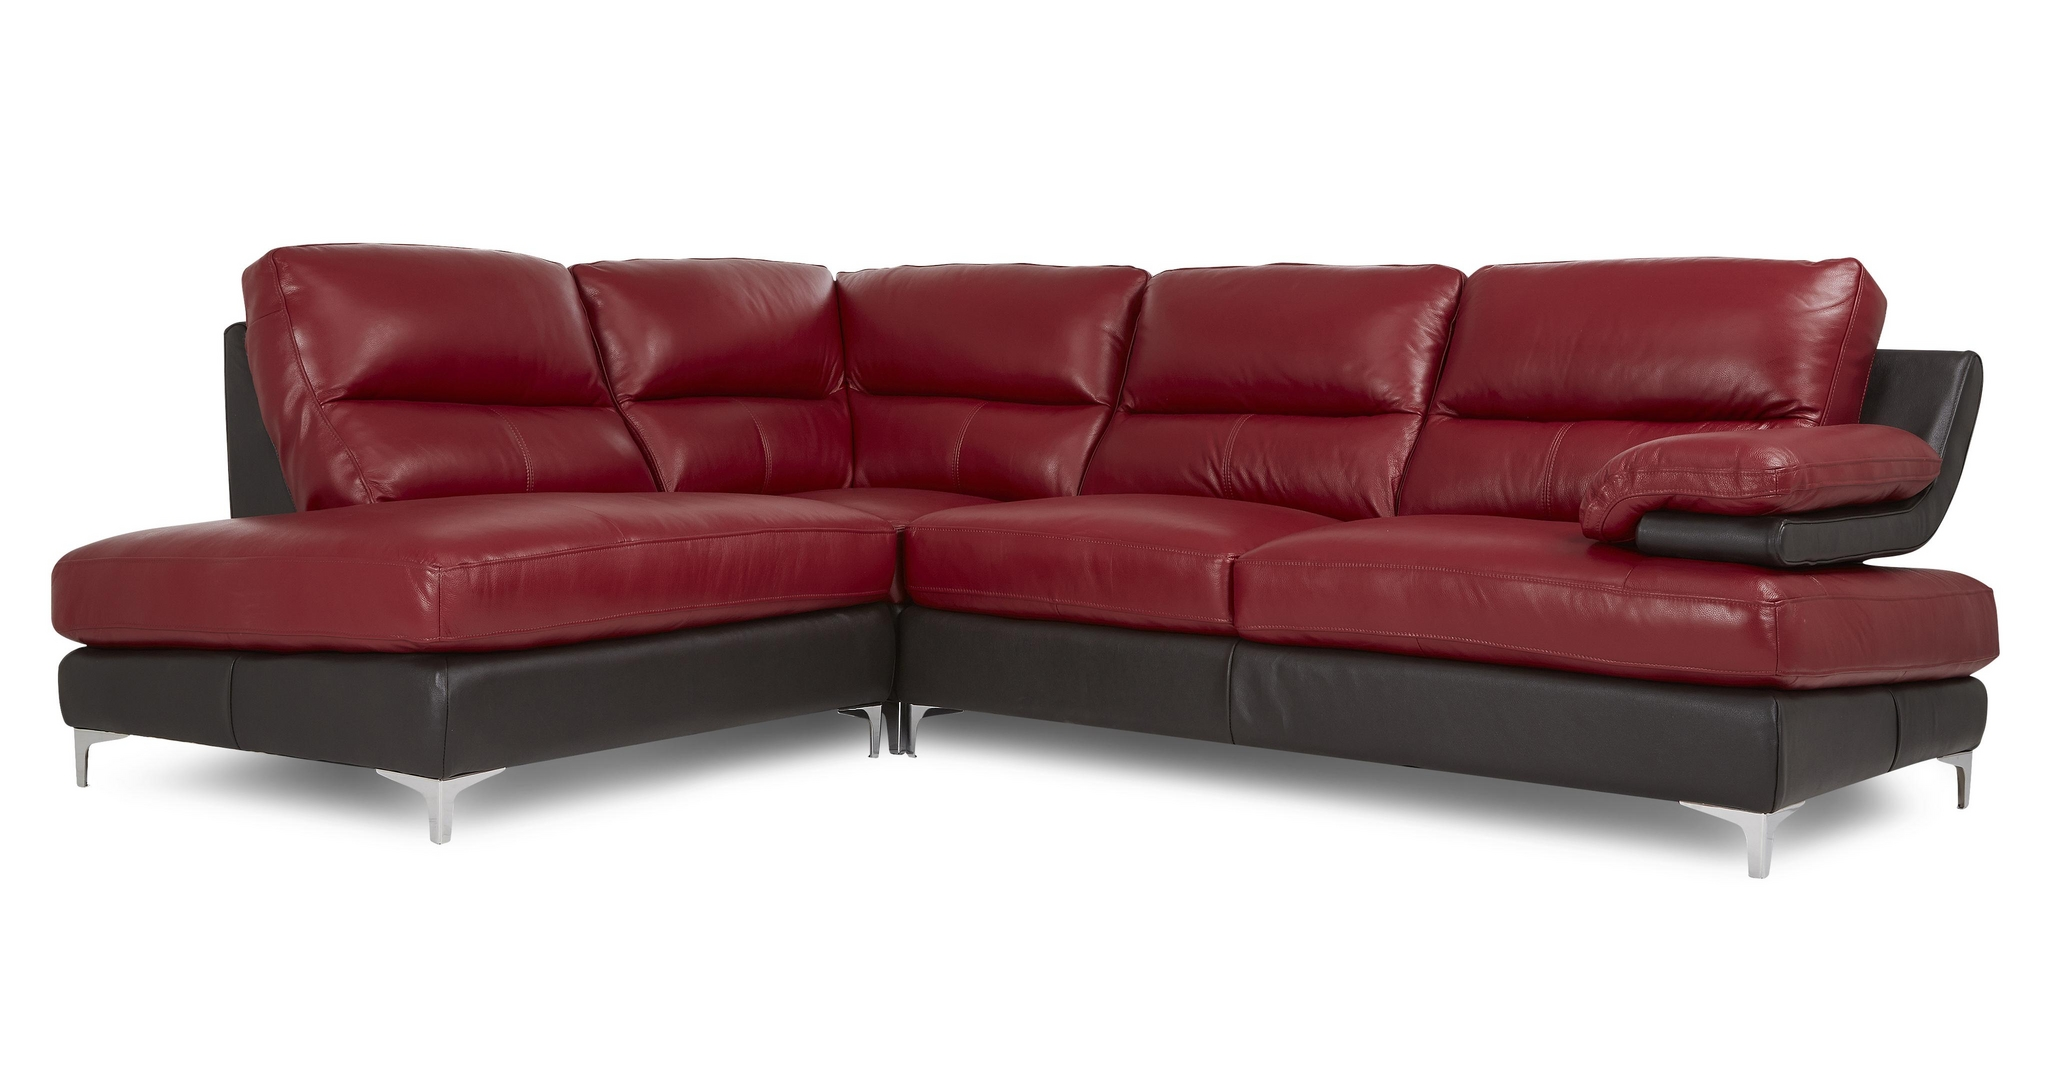 Dfs Black Leather Sofa Images 2 Seater